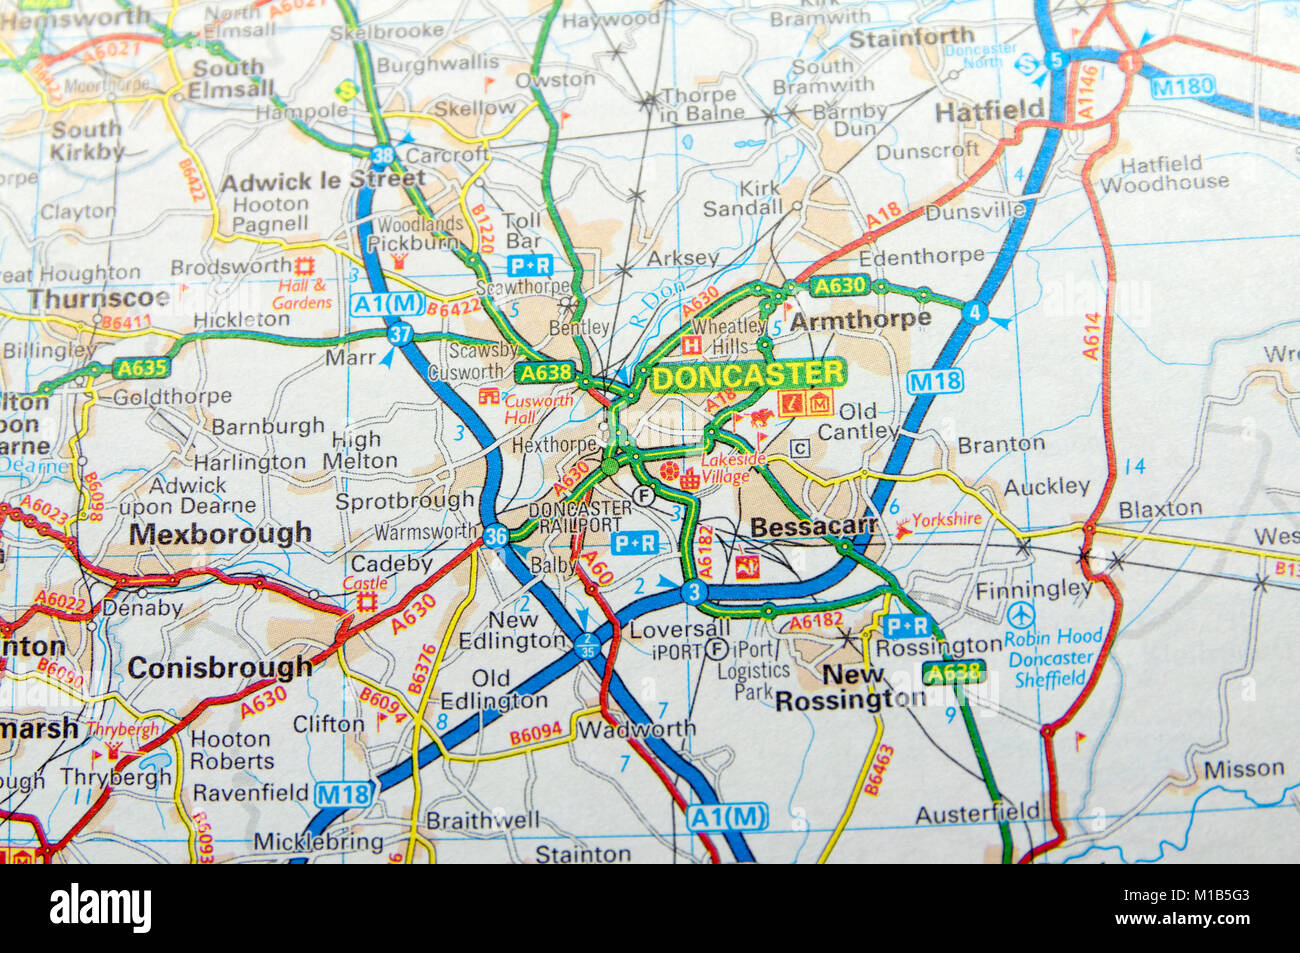 Road Map of Doncaster, England Stock Photo: 172964179 - Alamy